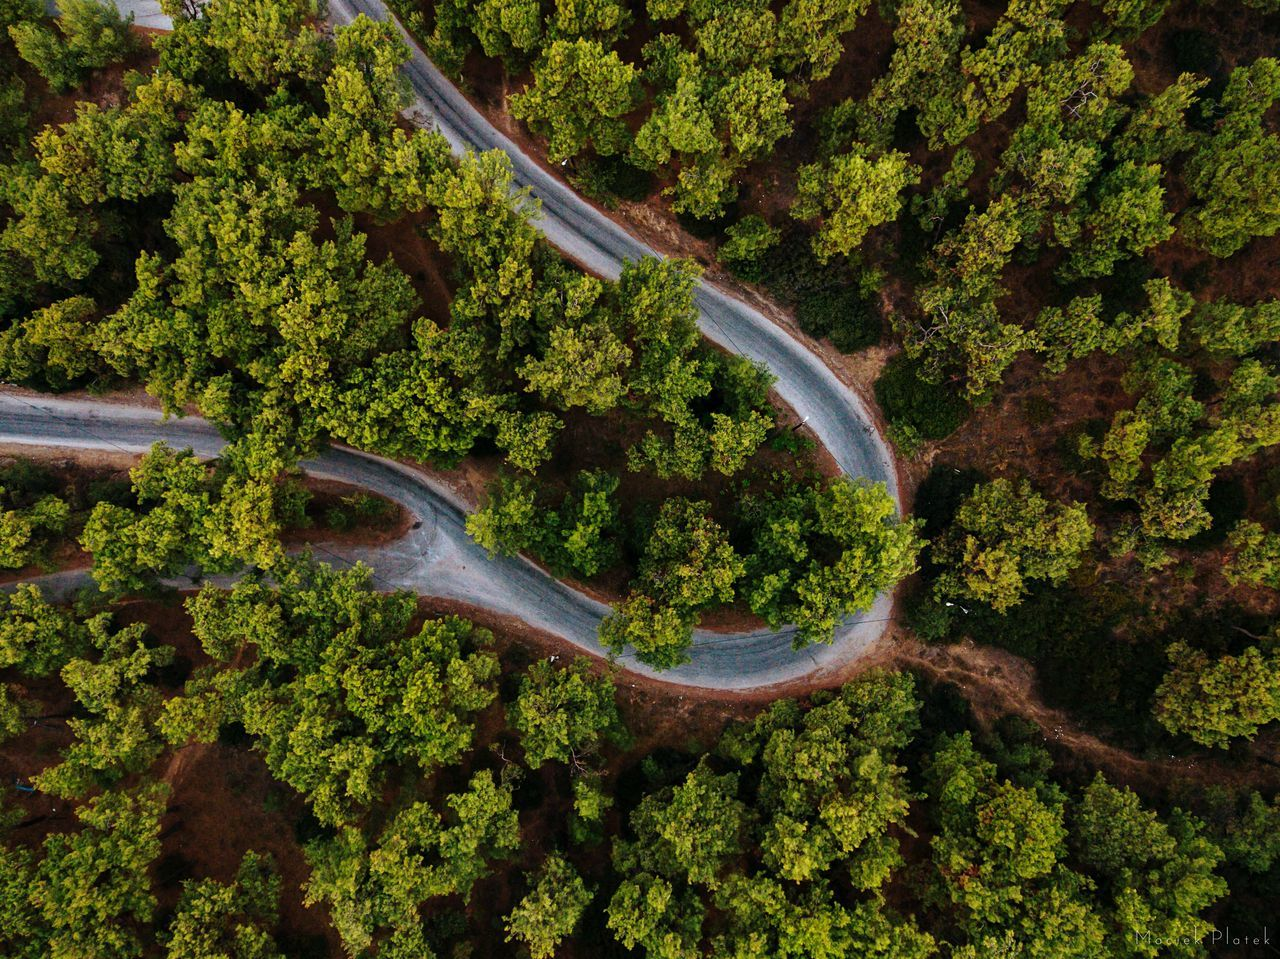 Road trough the forest Green Color Aerial View High Angle View Nature Growth No People Scenics Beauty In Nature Tree Outdoors Day Aerial Photography Drone  Epic Aerial Travel Destinations Tranquility The City Light Flying High